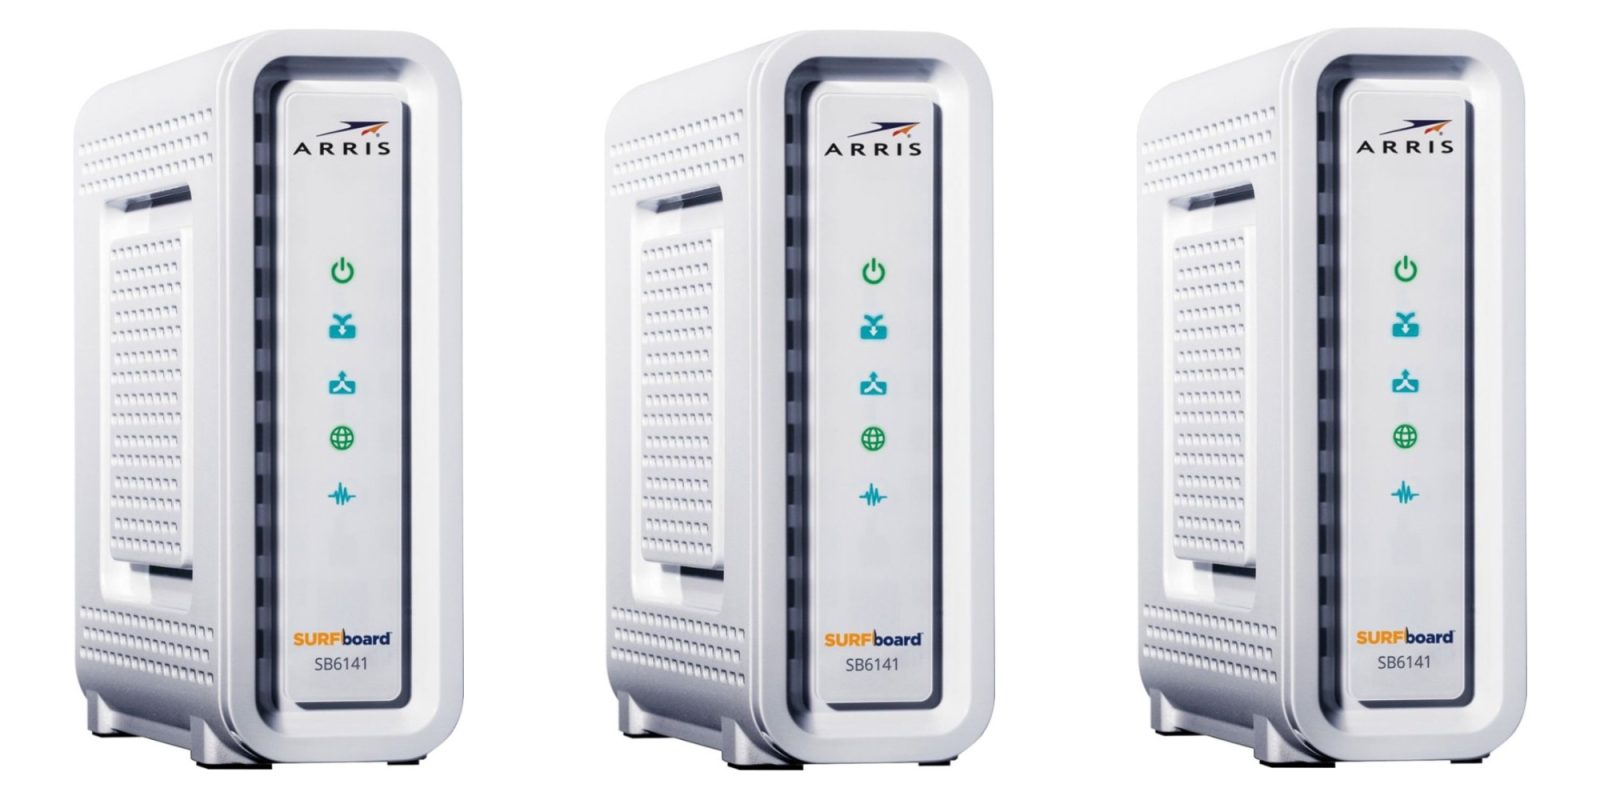 Ditch your ISP's rental and score the ARRIS DOCSIS 3.0 Modem at $40 (Save 20%)